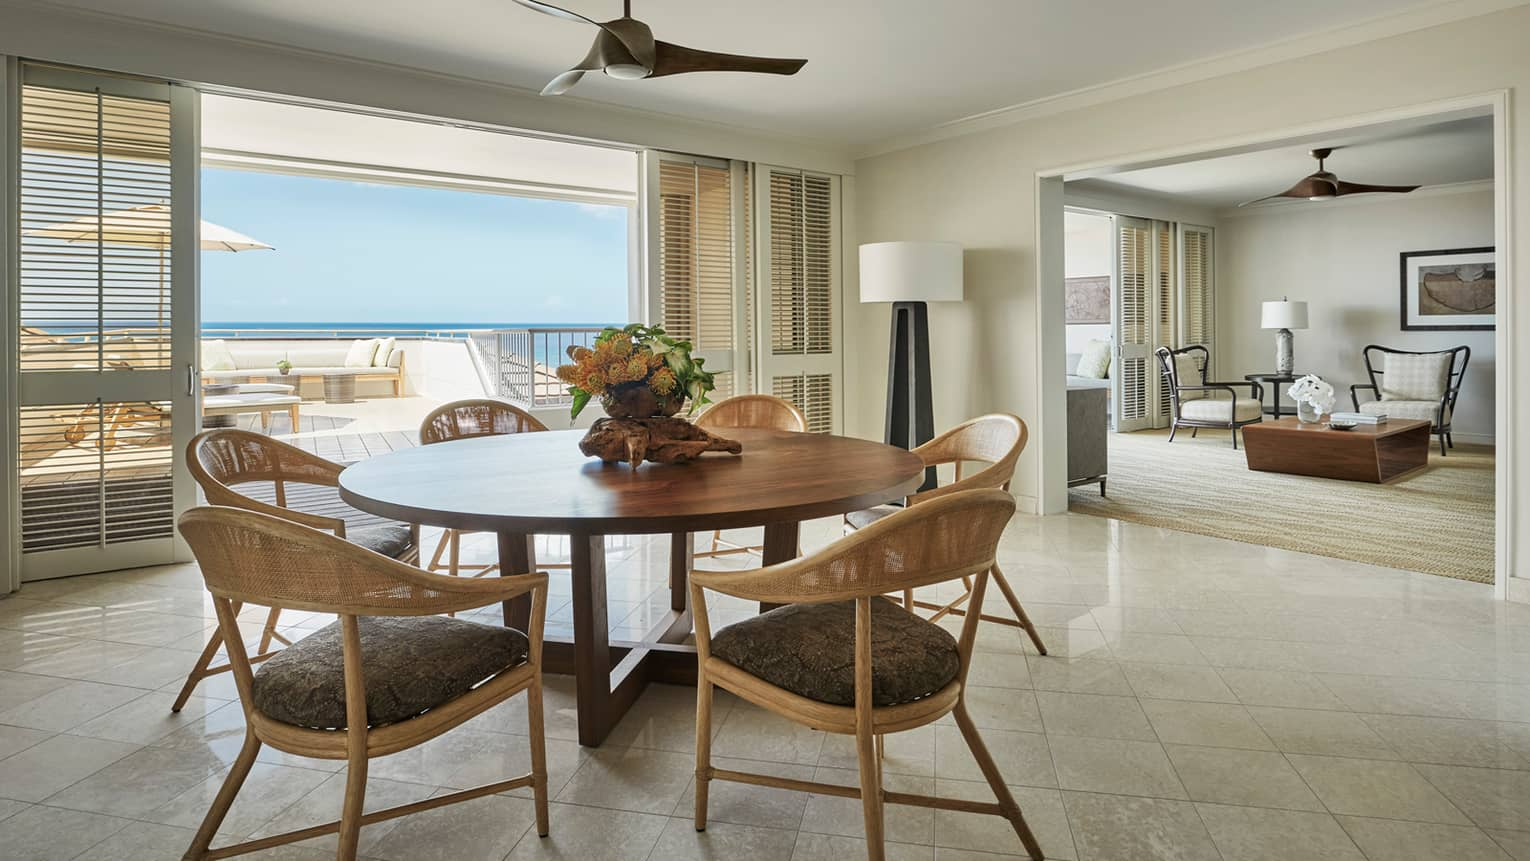 Residence dining room with round wood table retro wicker seats, sliding balcony shutters